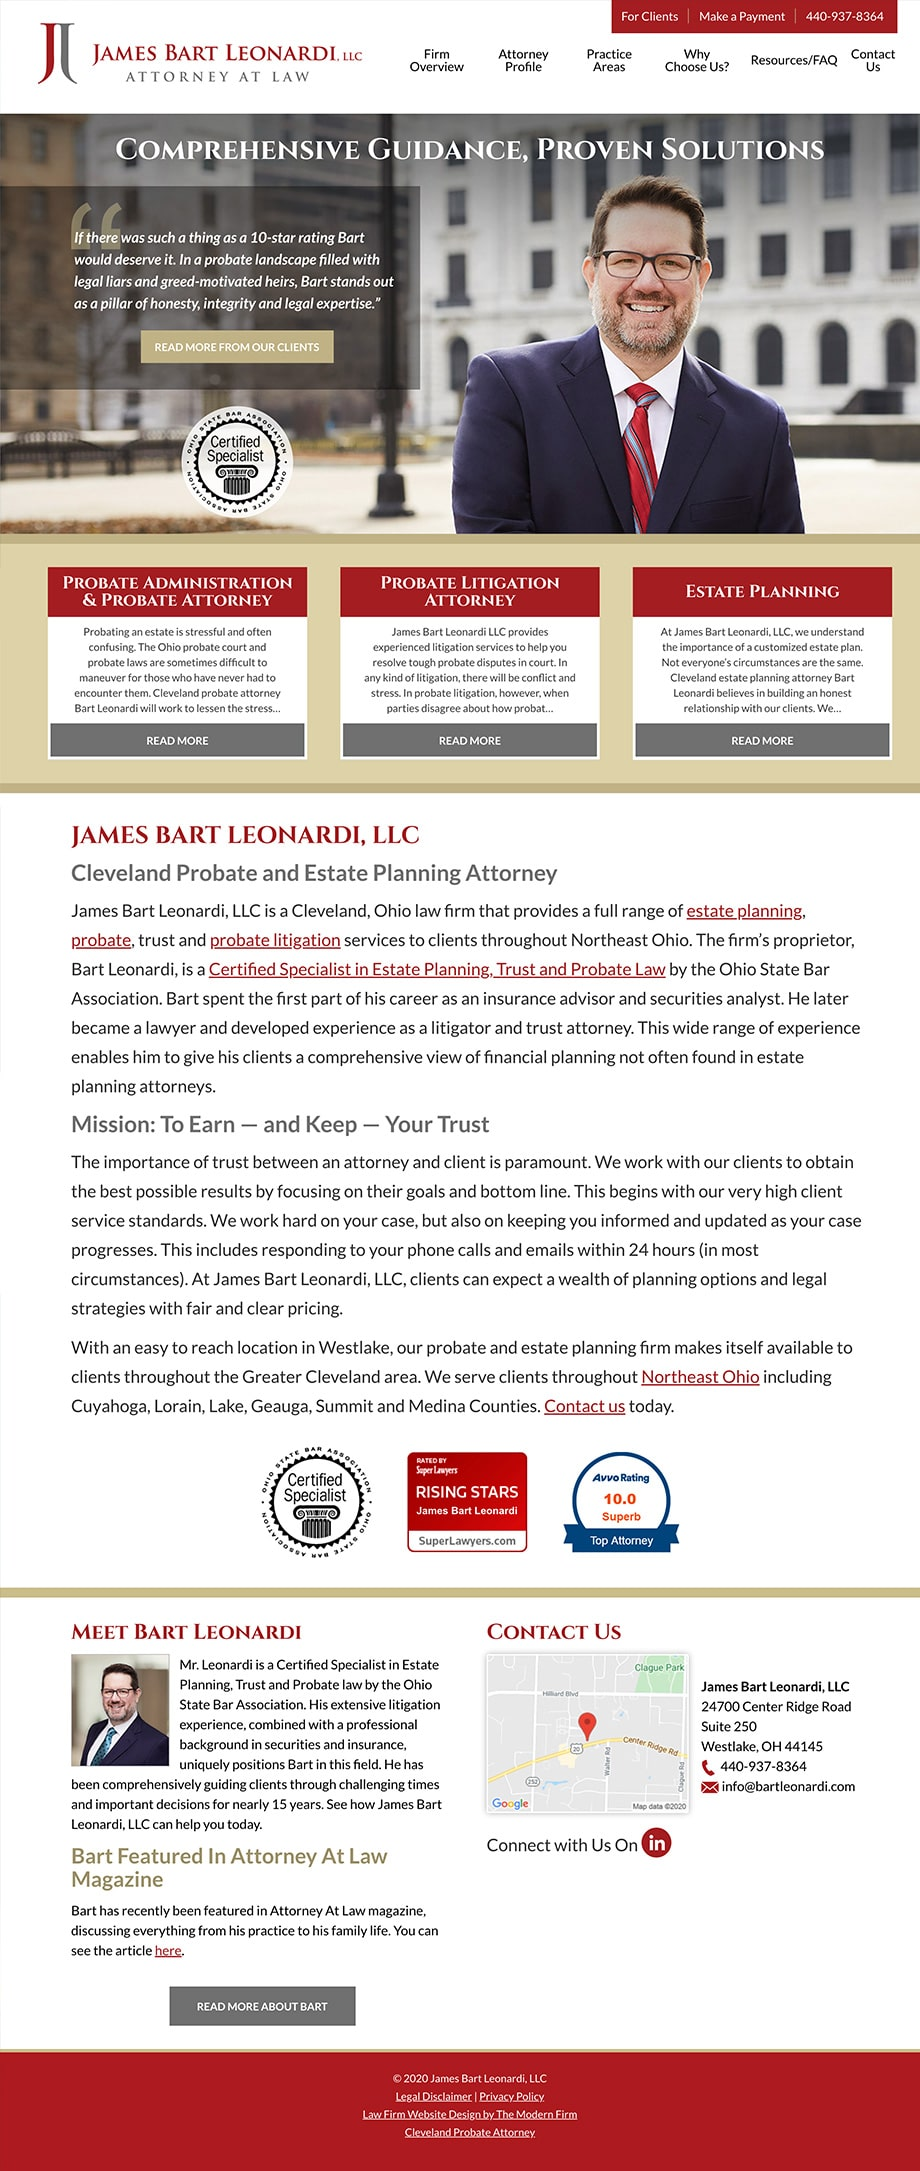 Law Firm Website Design for James Bart Leonardi, LLC